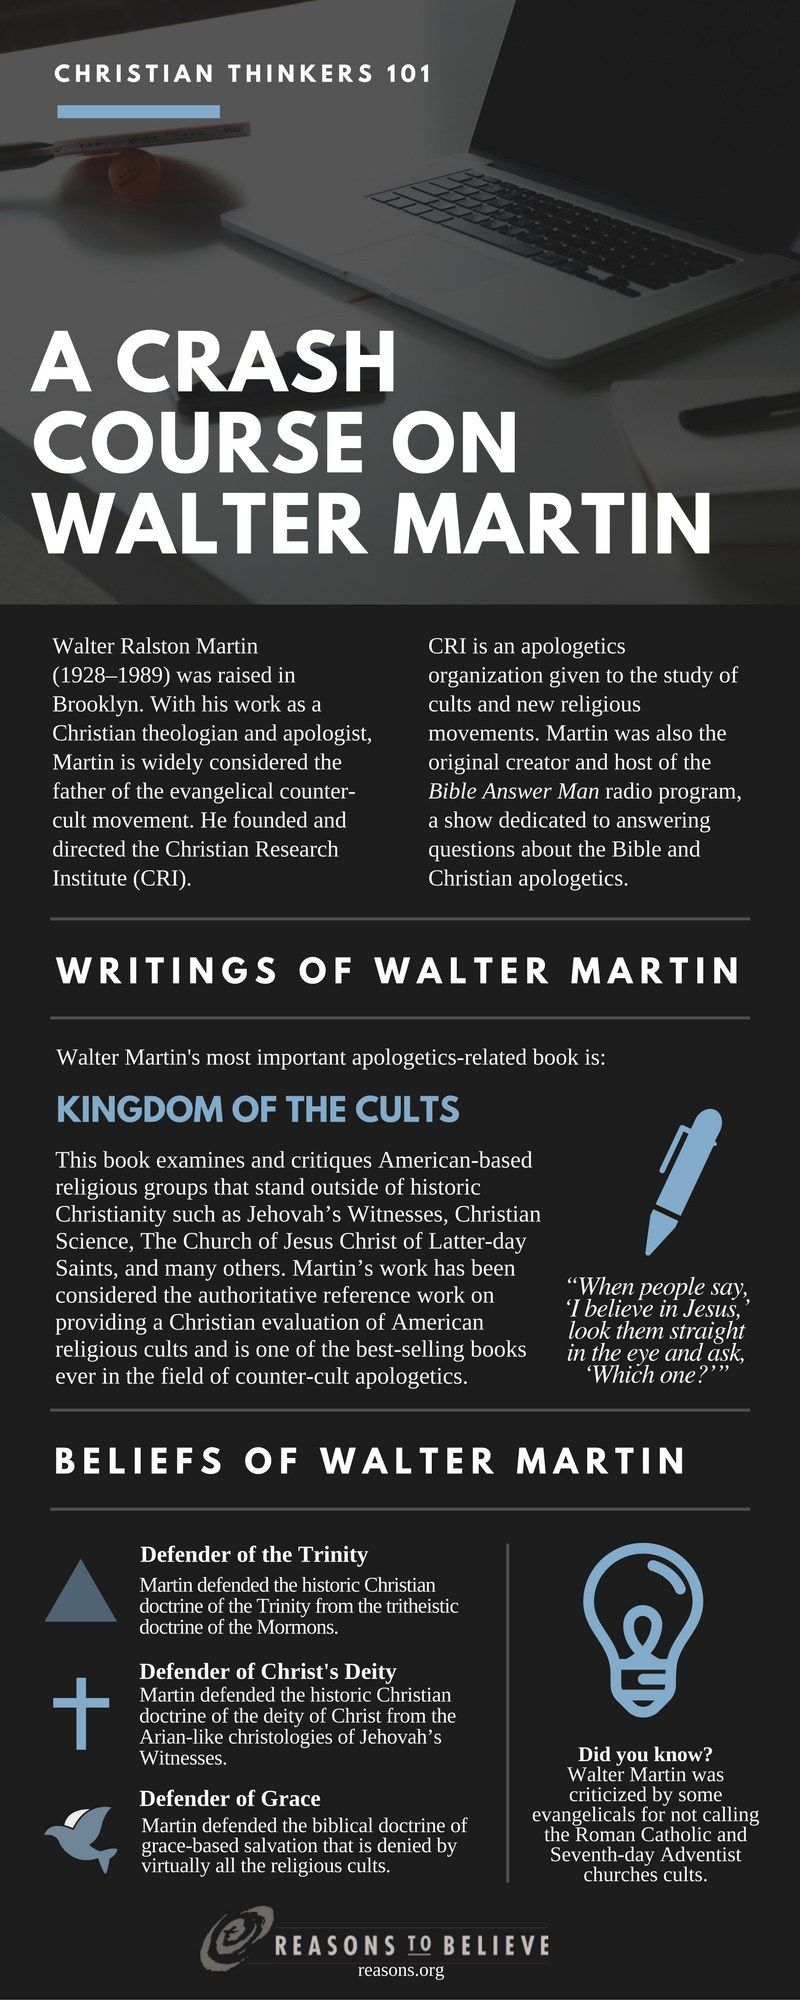 Christian Thinkers 101: A Crash Course on Walter Martin